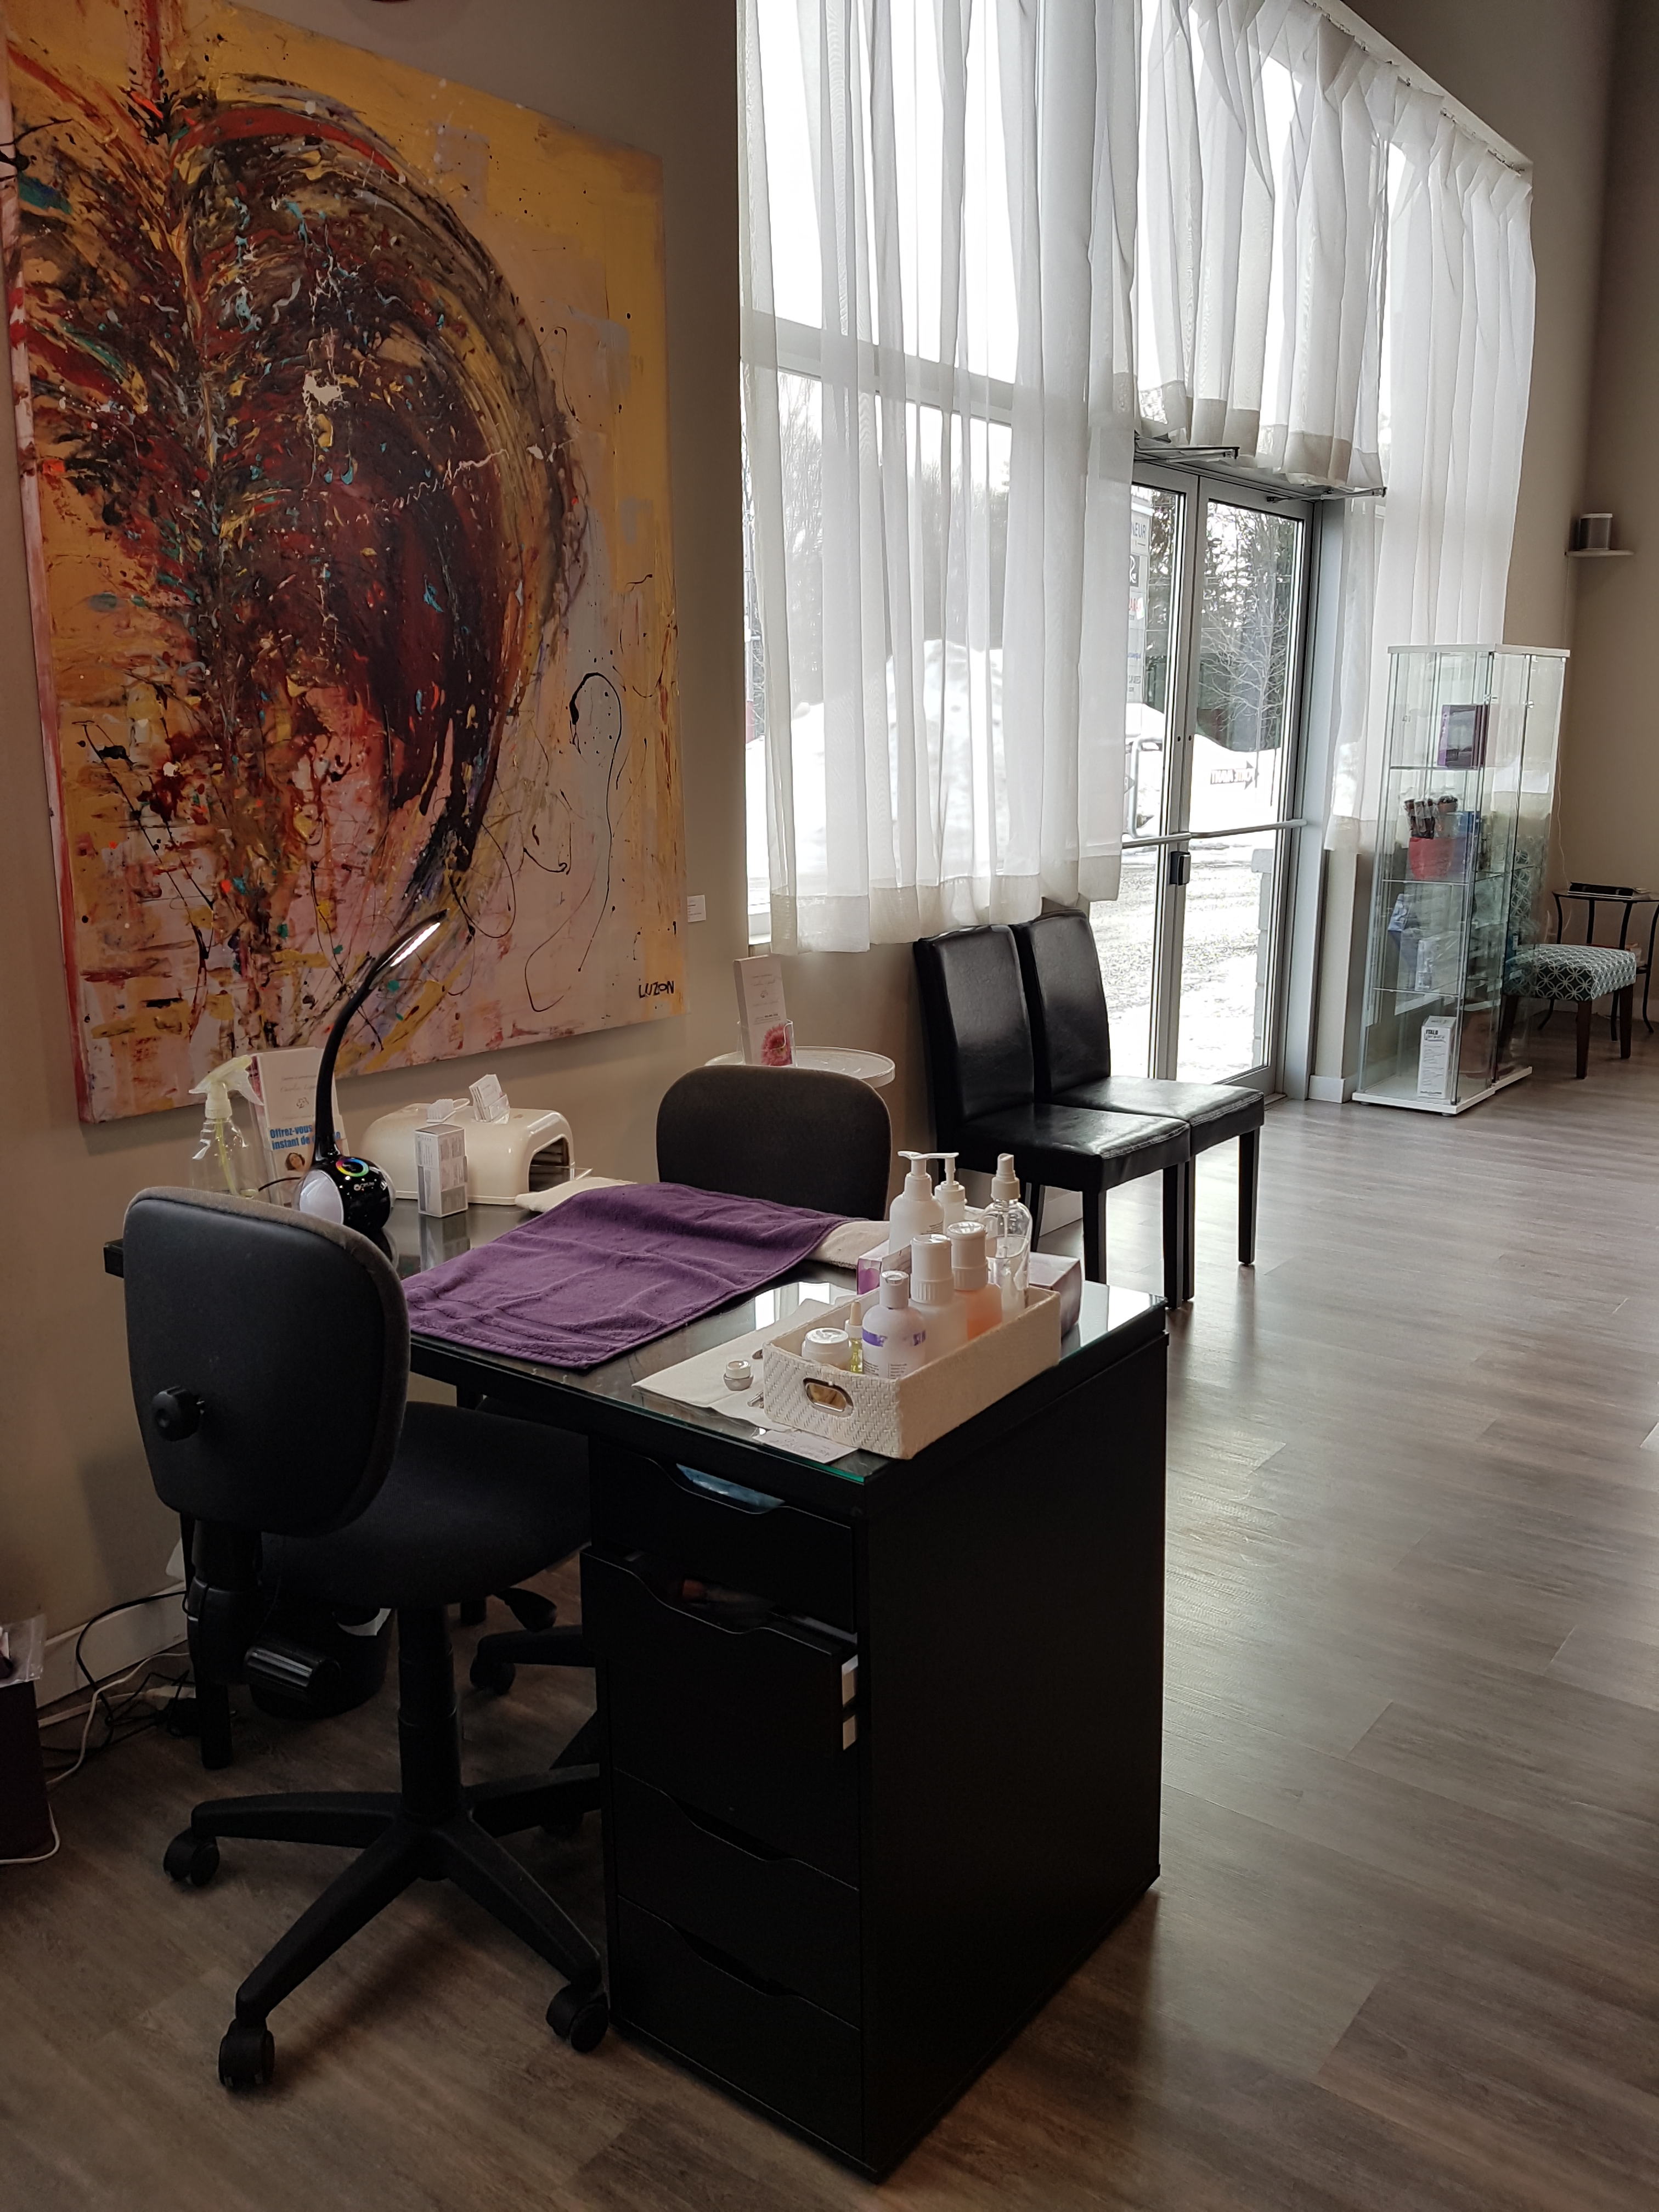 Le living room vaudreuil for Living room coiffeur